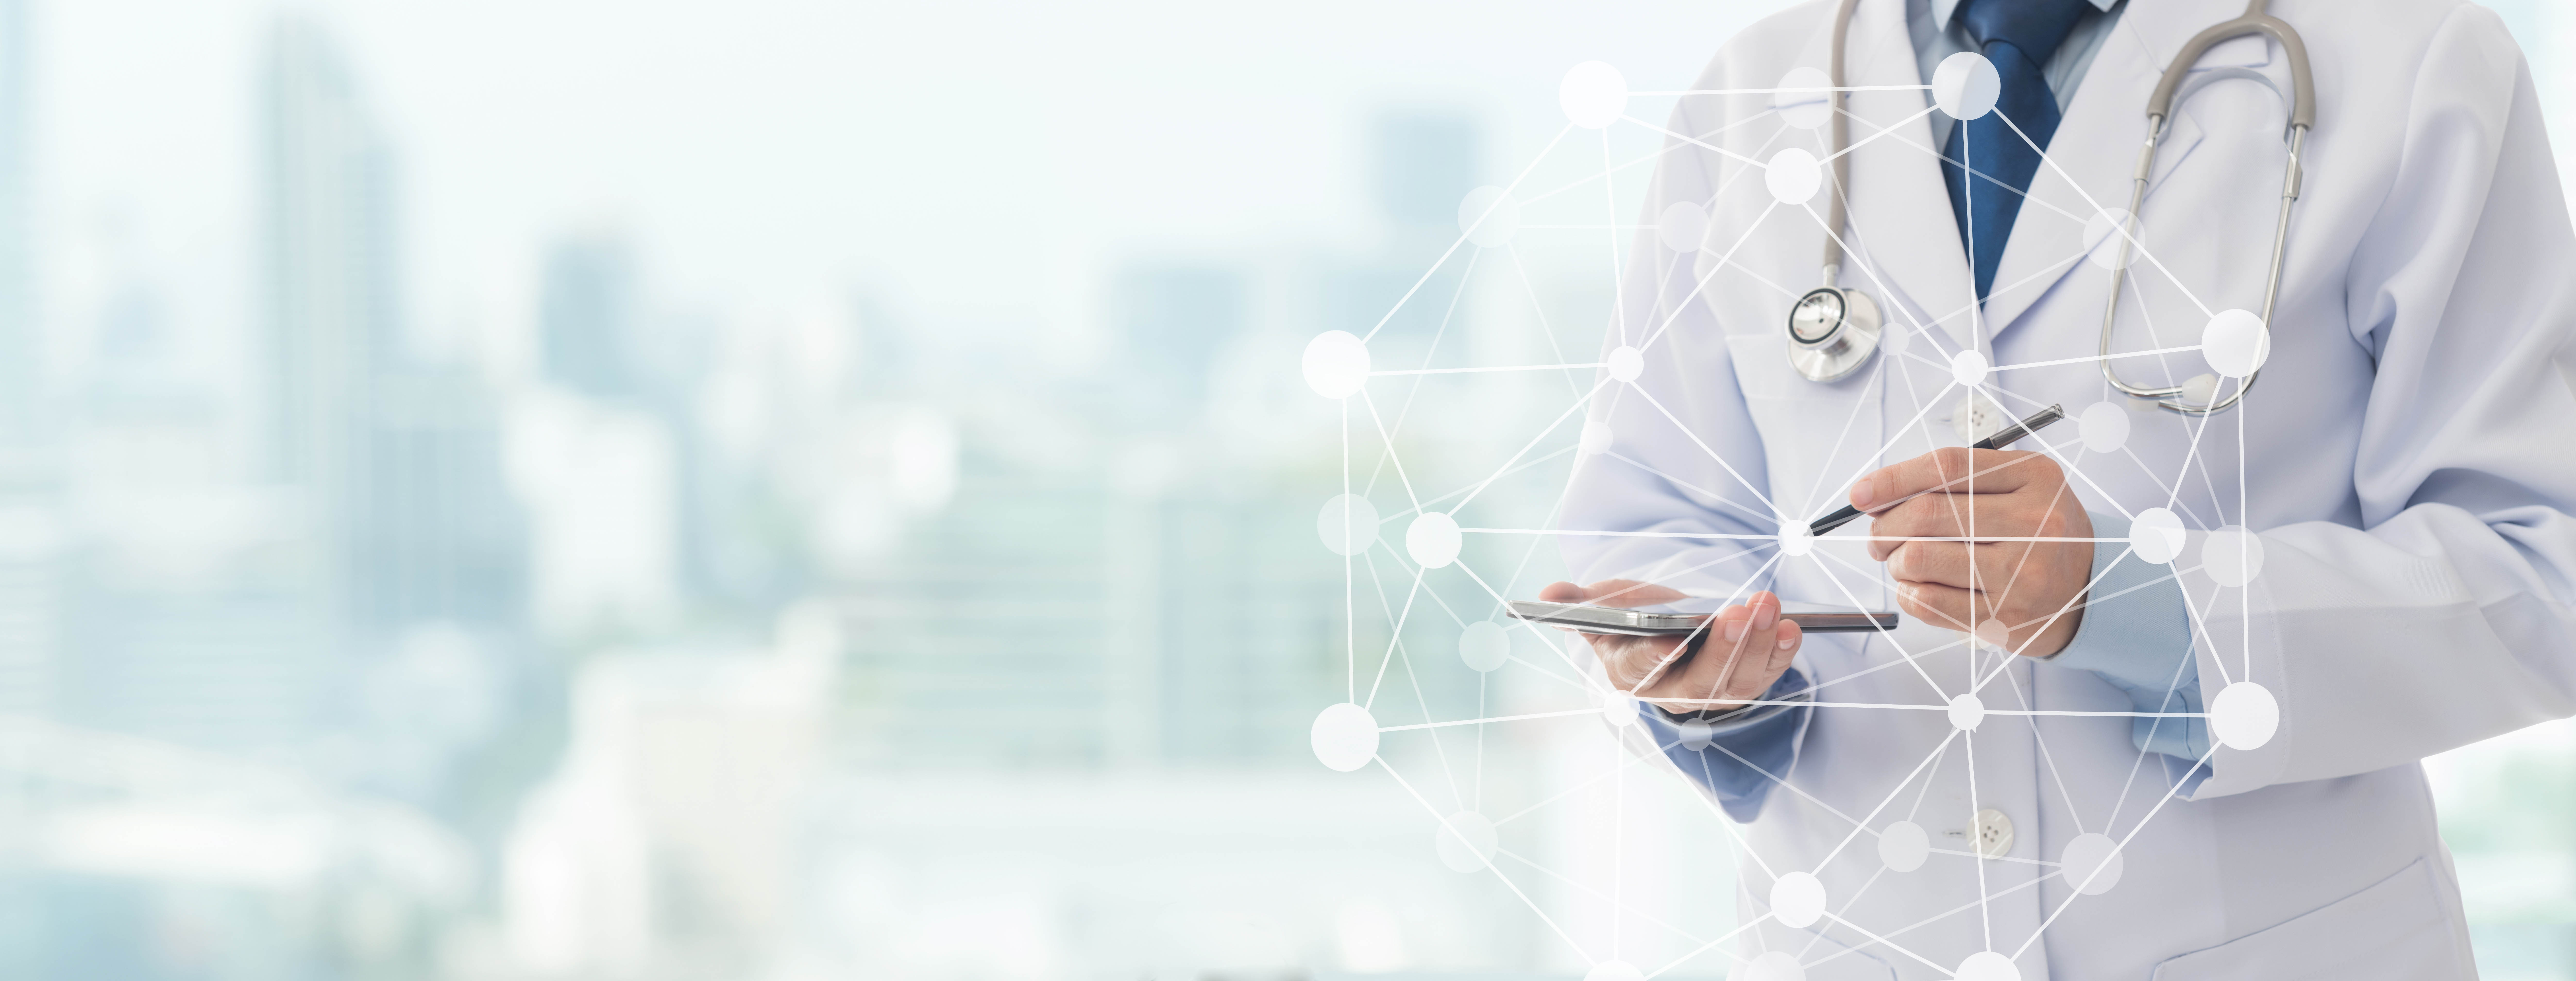 Mobile App For Finding Doctors